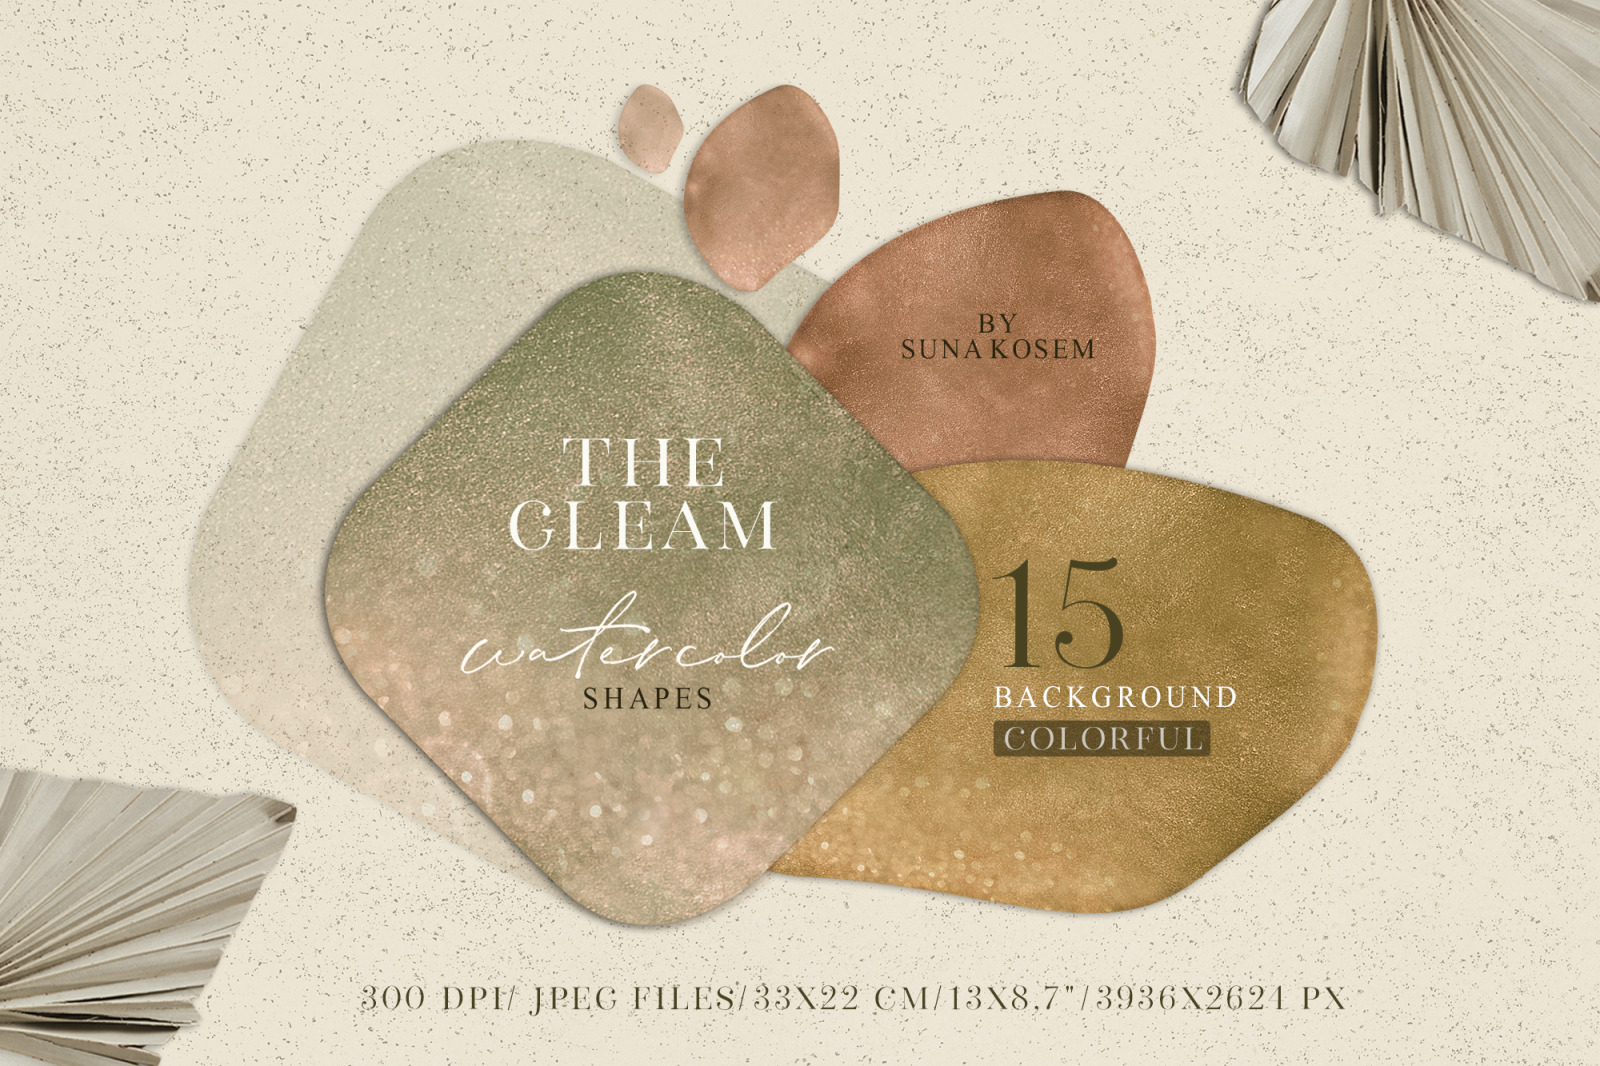 The Gleam Watercolor Shapes